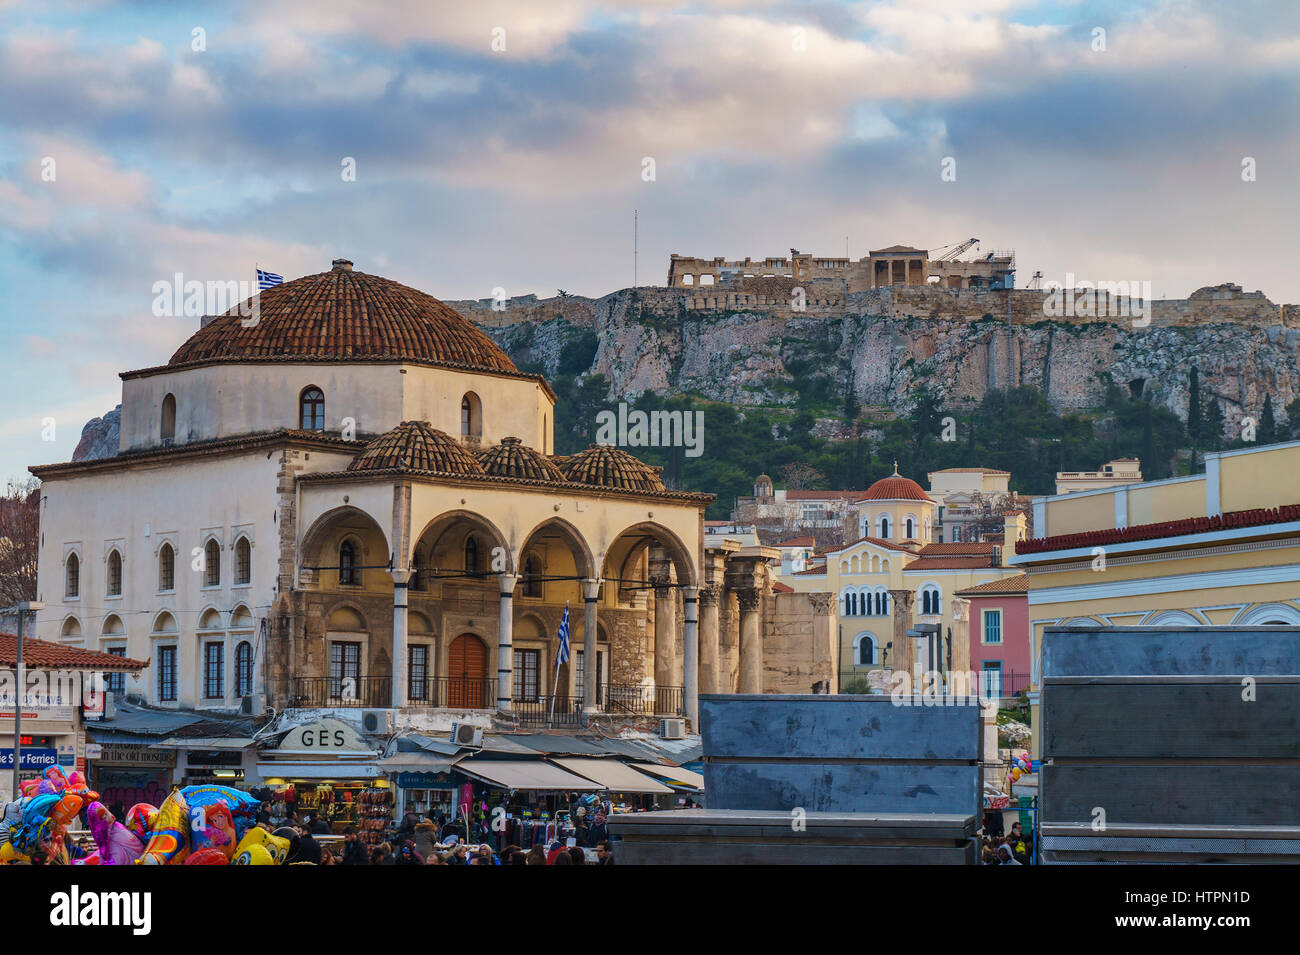 Monastiraki square. Located near Ermou Street, this is a flea market in the old city. Athens, Attica, Greece. - Stock Image